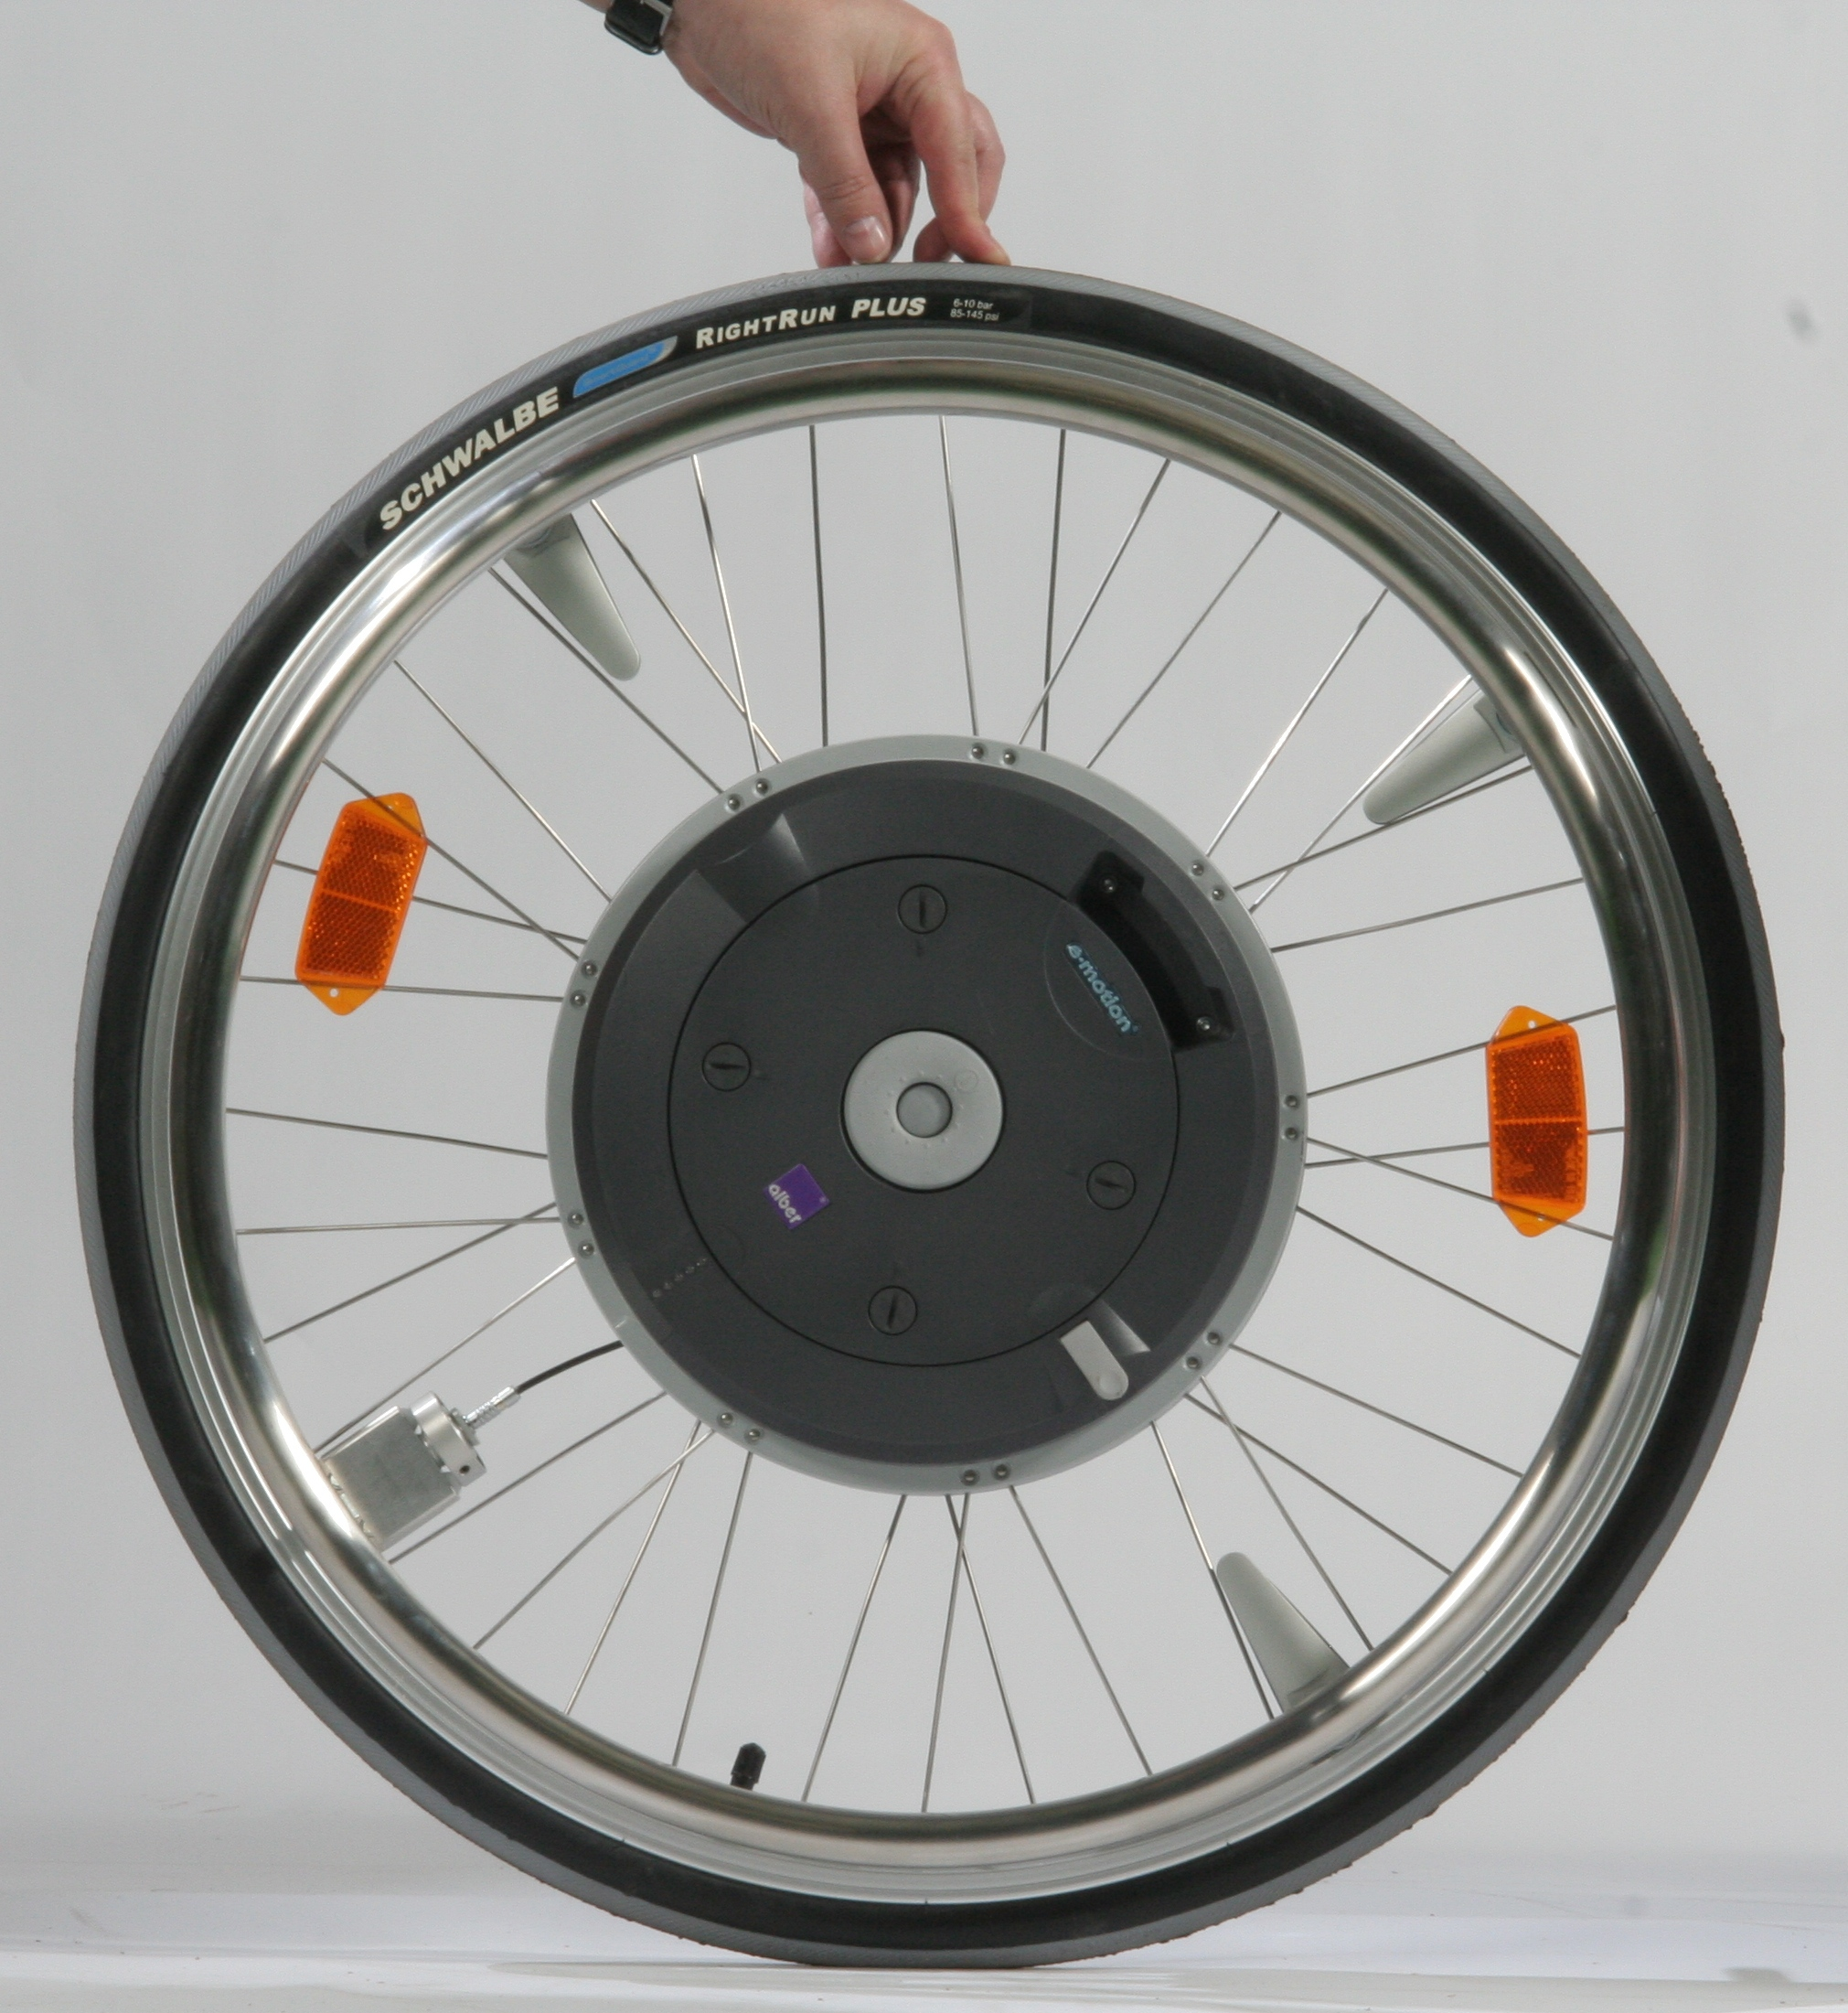 Rolstoel, rolstoel.nl, rolstoel op maat, rolstoelen, O4 Wheelchairs, wielgrootte